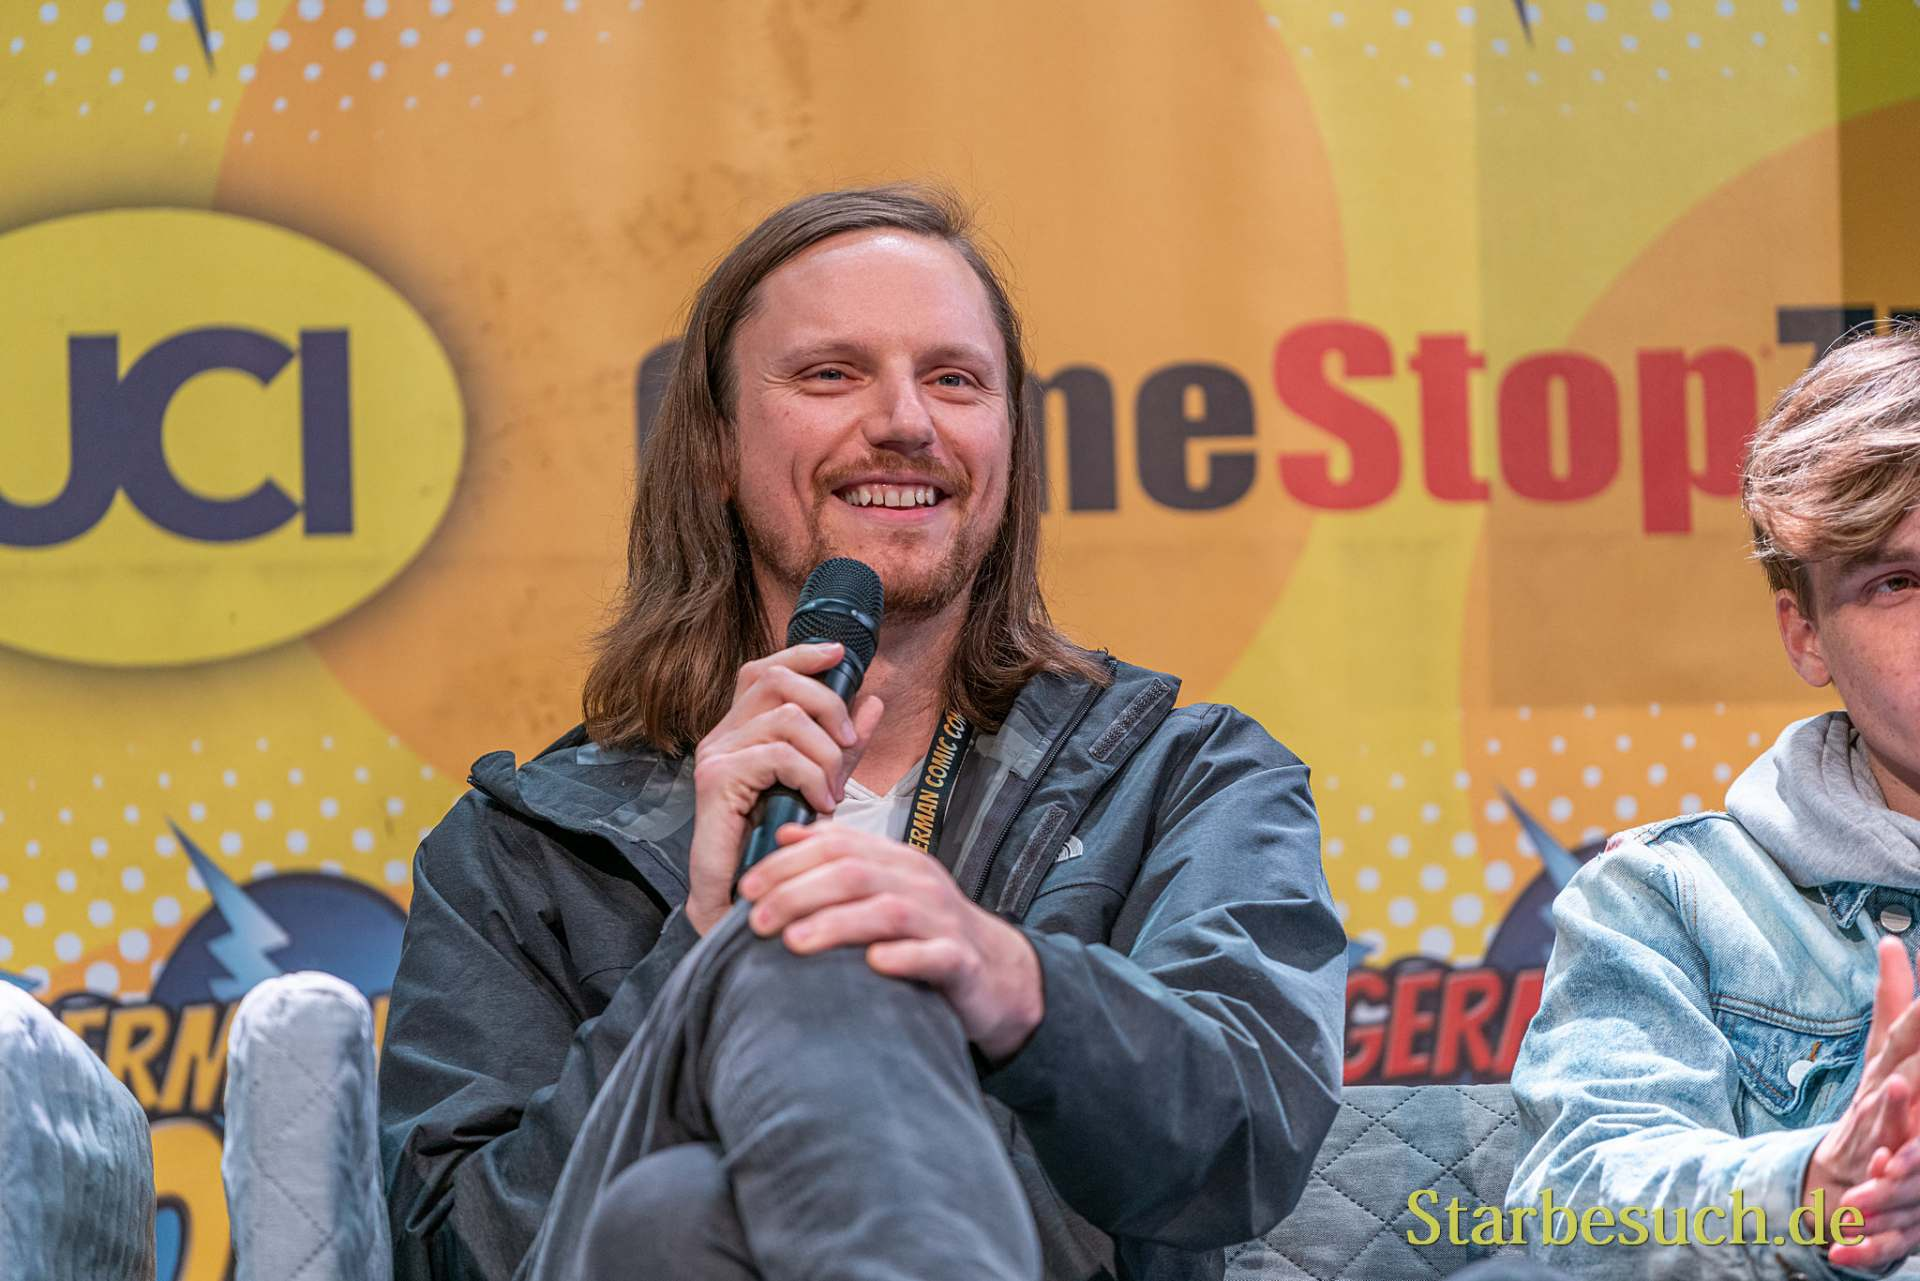 DORTMUND, GERMANY - December 7th 2019: Joshua Mikel at German Comic Con Dortmund